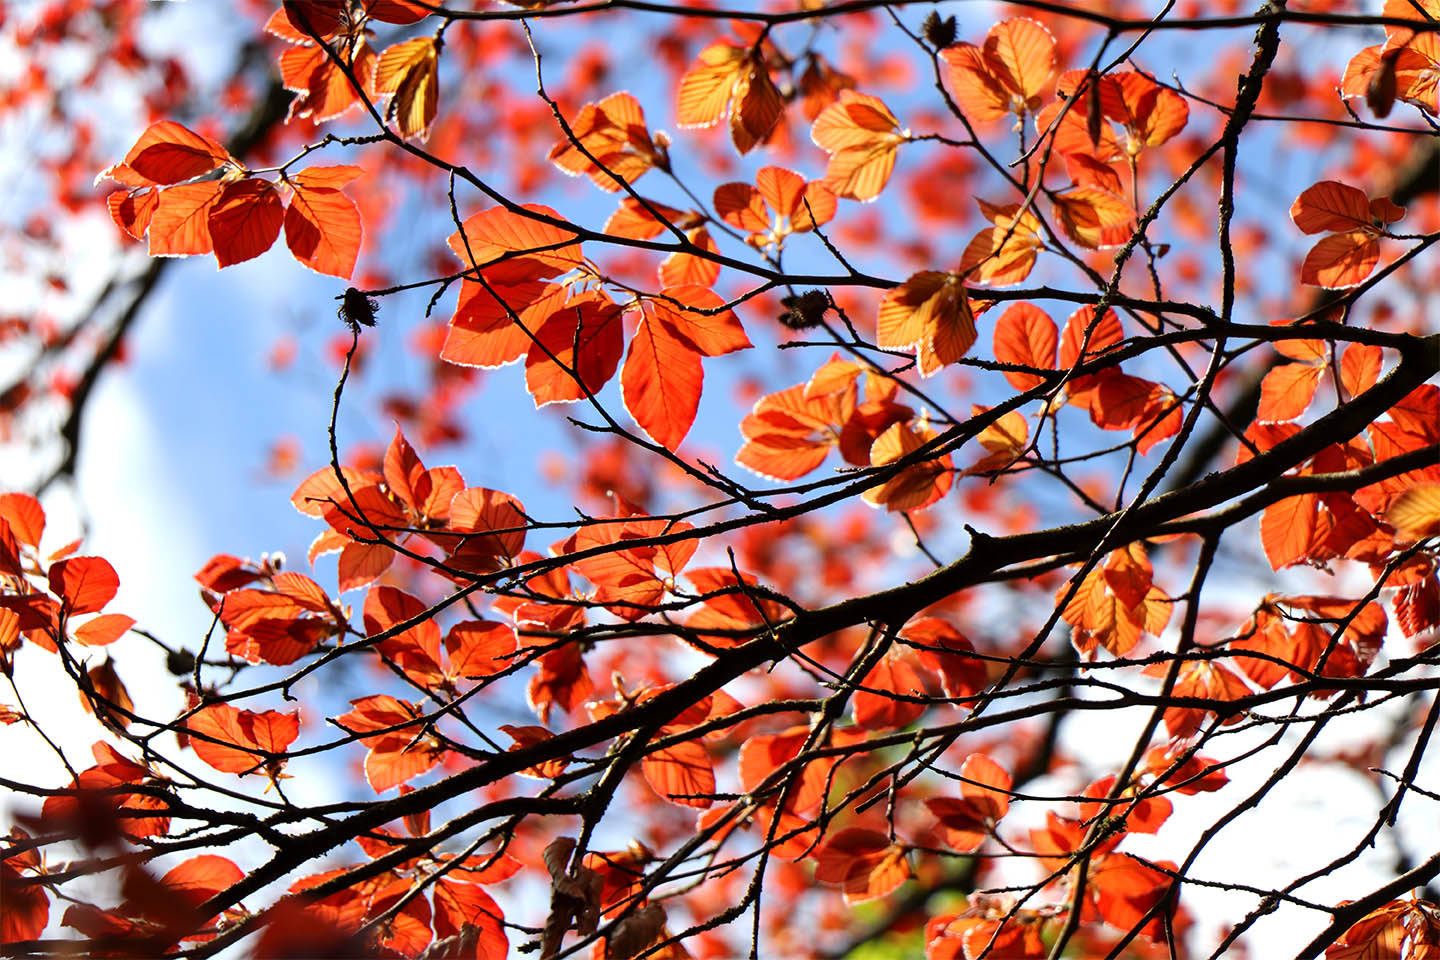 Copper beach (Fagus sylvatica Purpurea) foliage against blue sky